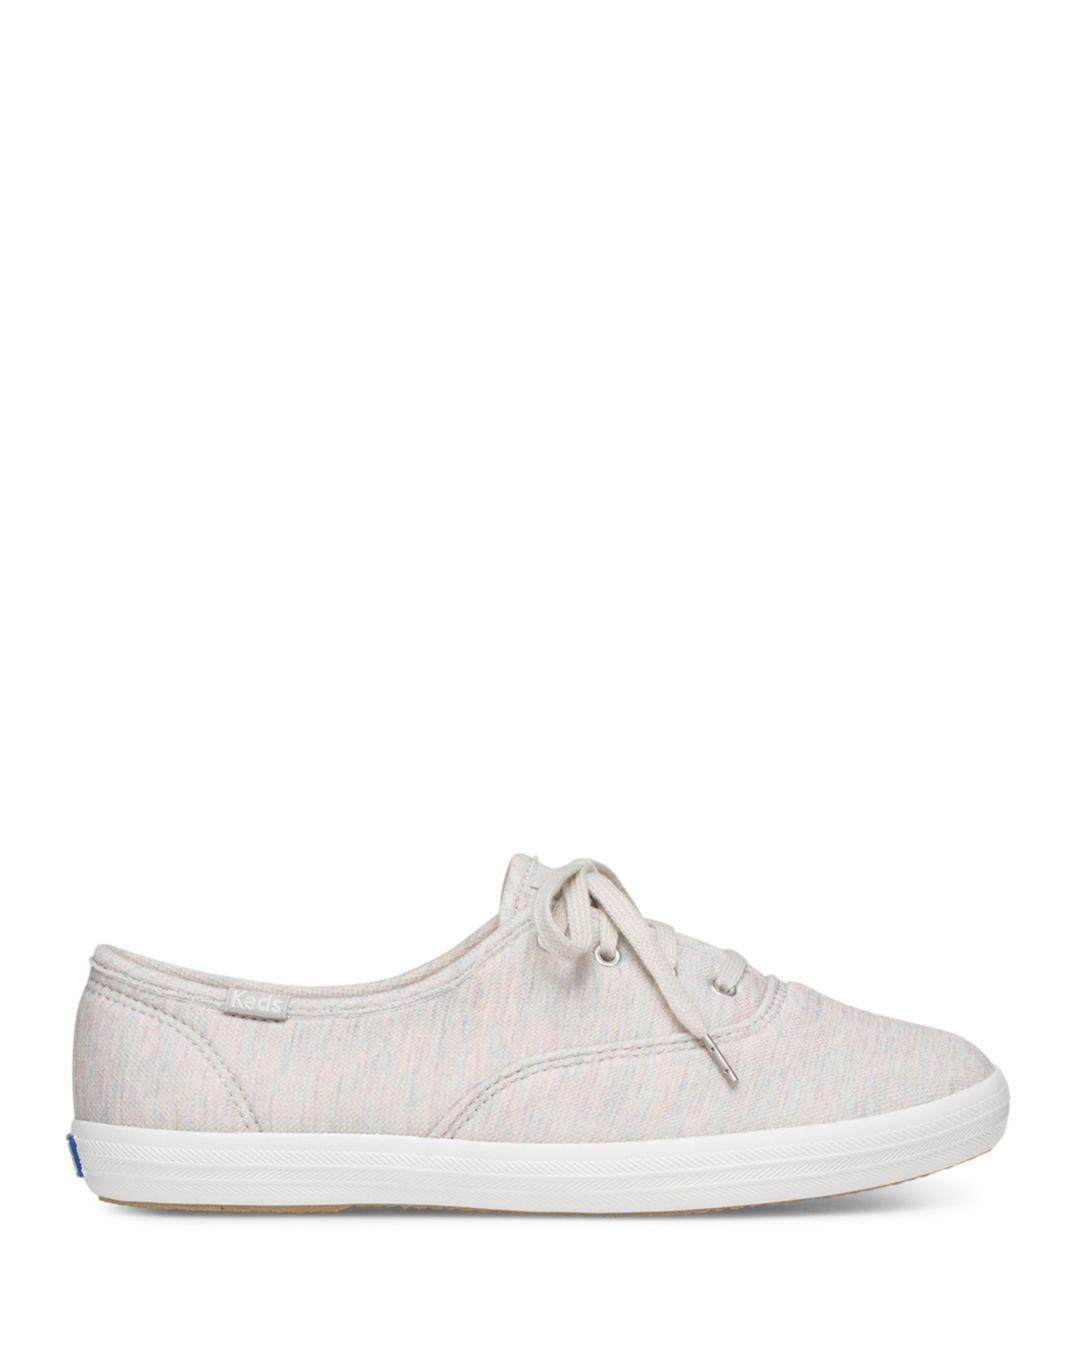 cc689c2780b107 Lyst - Keds Women s Champion Jersey Lace Up Sneakers in Gray